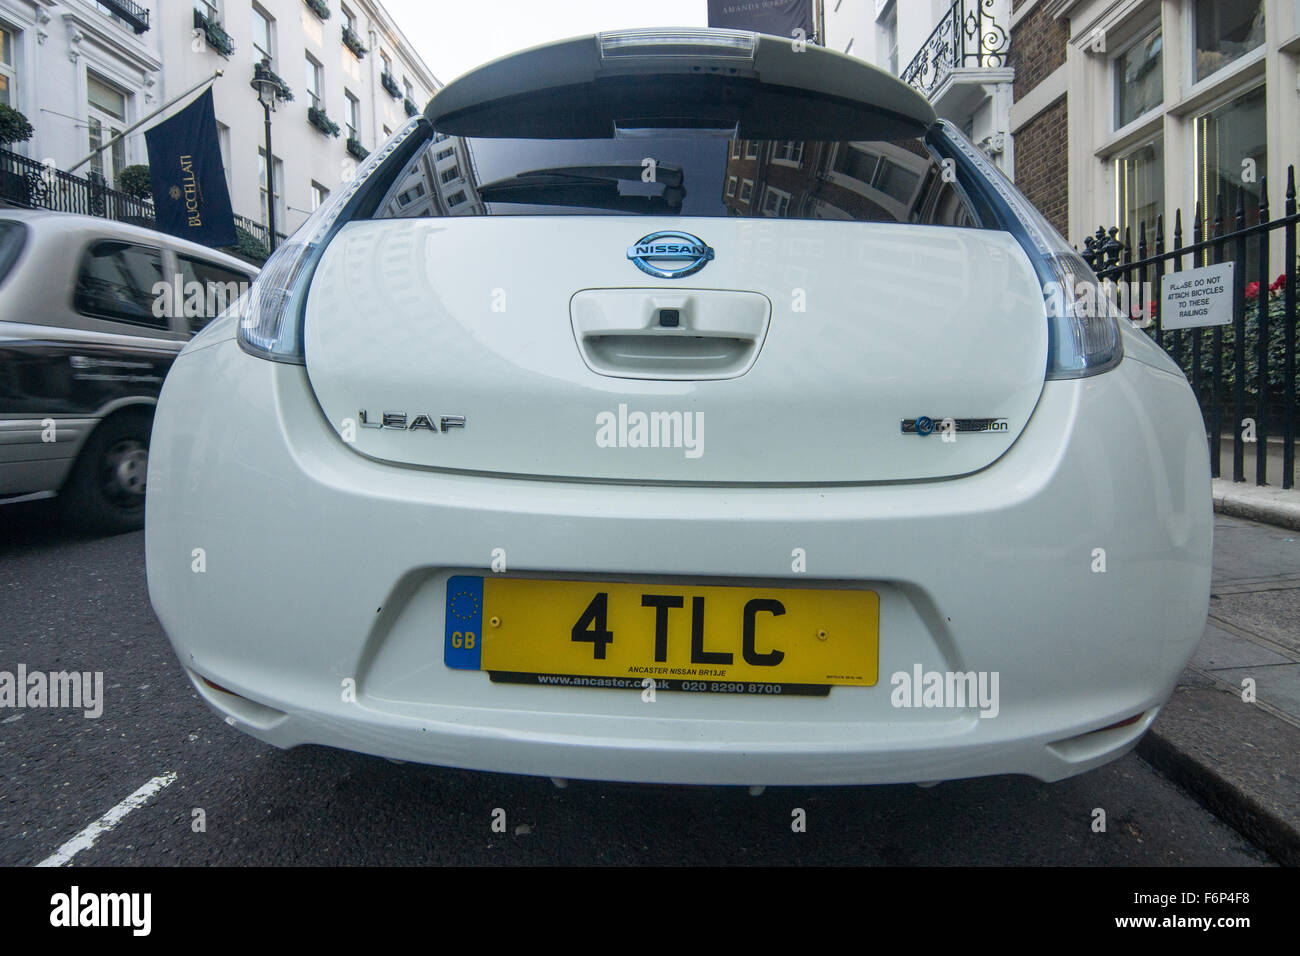 Nissan Leaf electric car.  Eco friendly car.   Ecological driver.   Saving the planet,  customised number plate - Stock Image